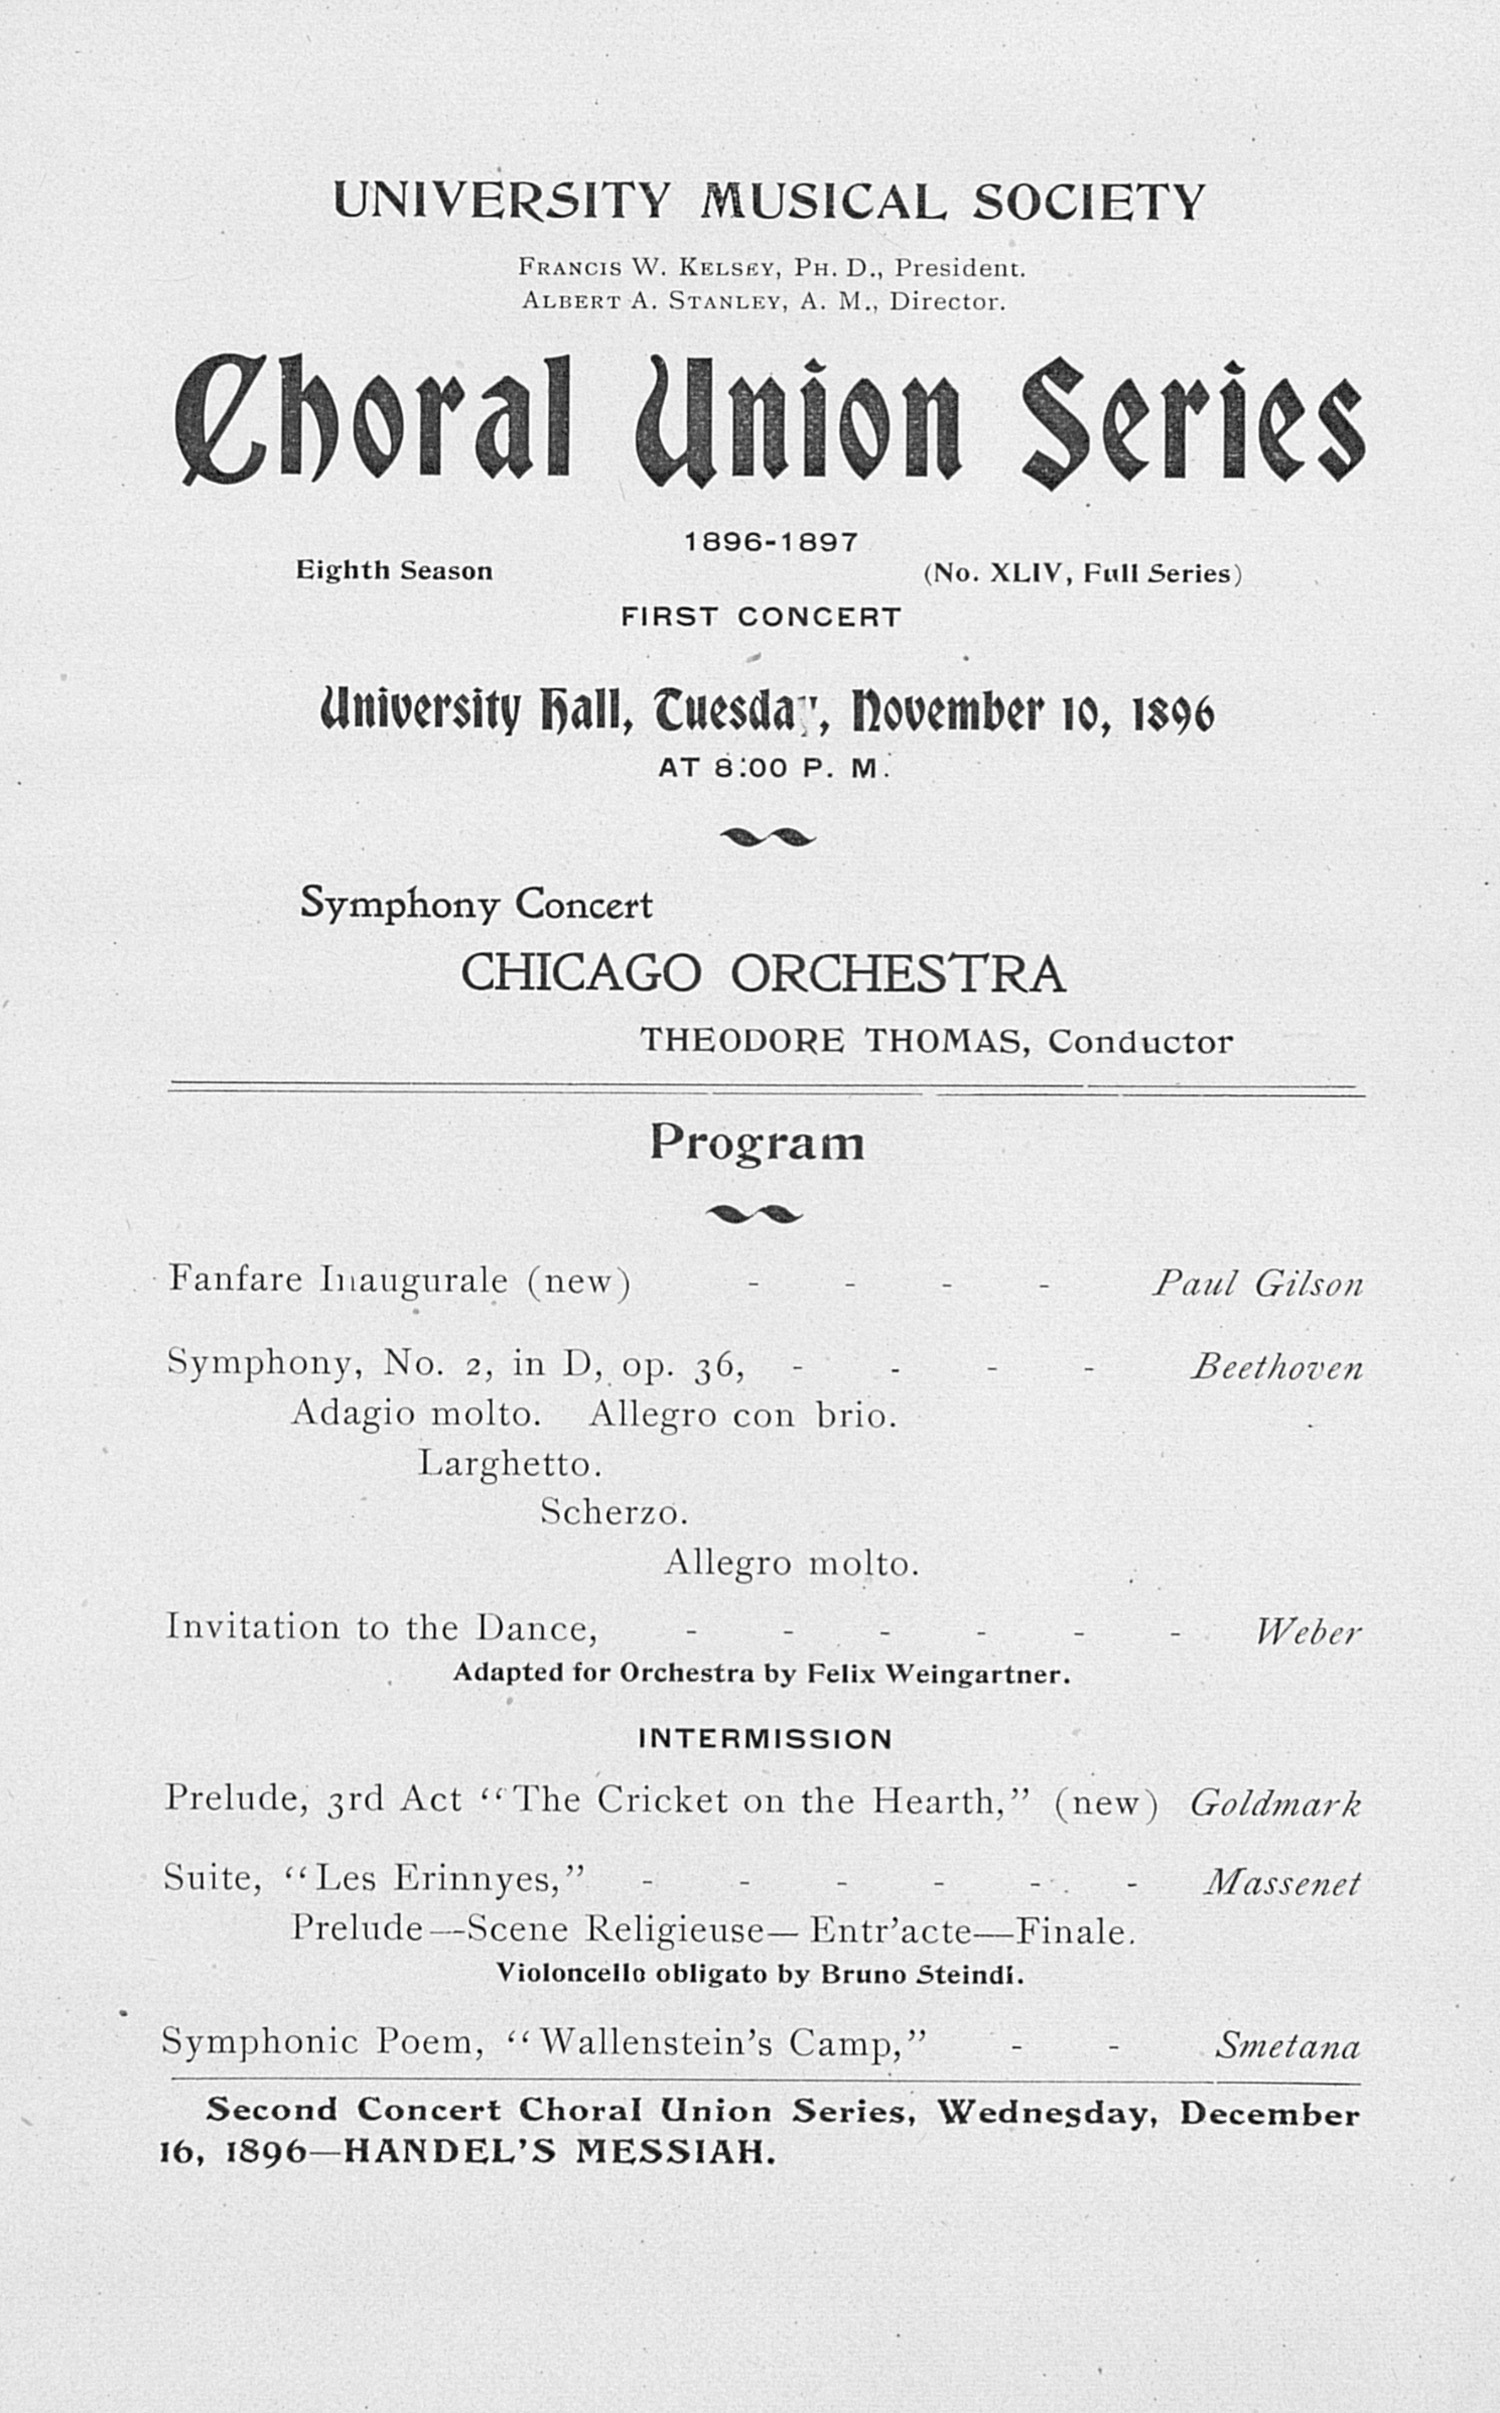 UMS Concert Program, November 10, 1896: Choral Union Series -- Chicago Orchestra image